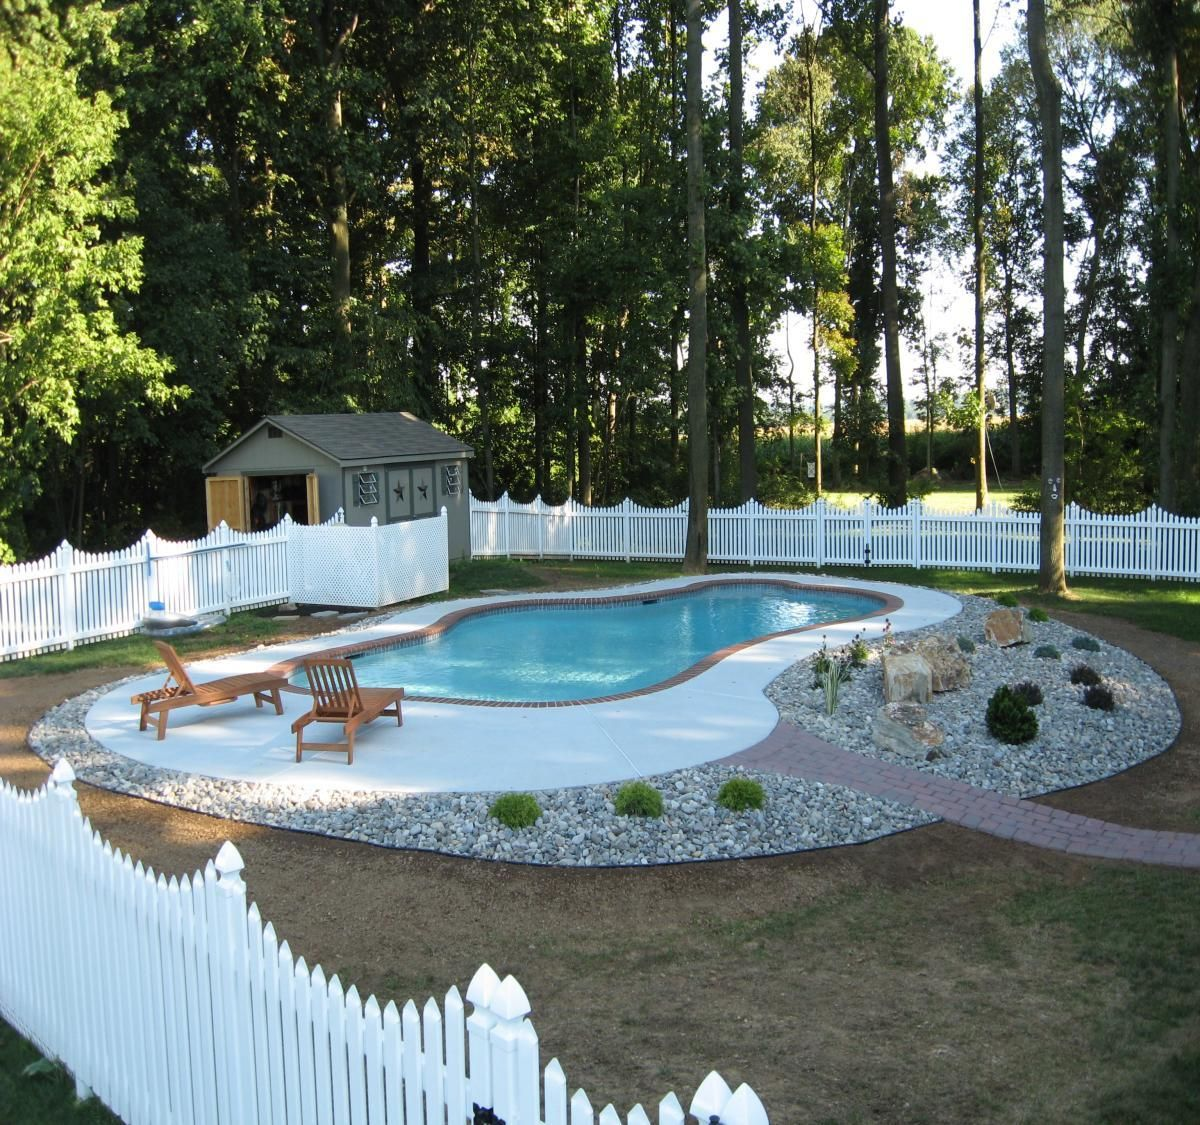 Low maintenance decorative pool design landscaping for Garden pool designs